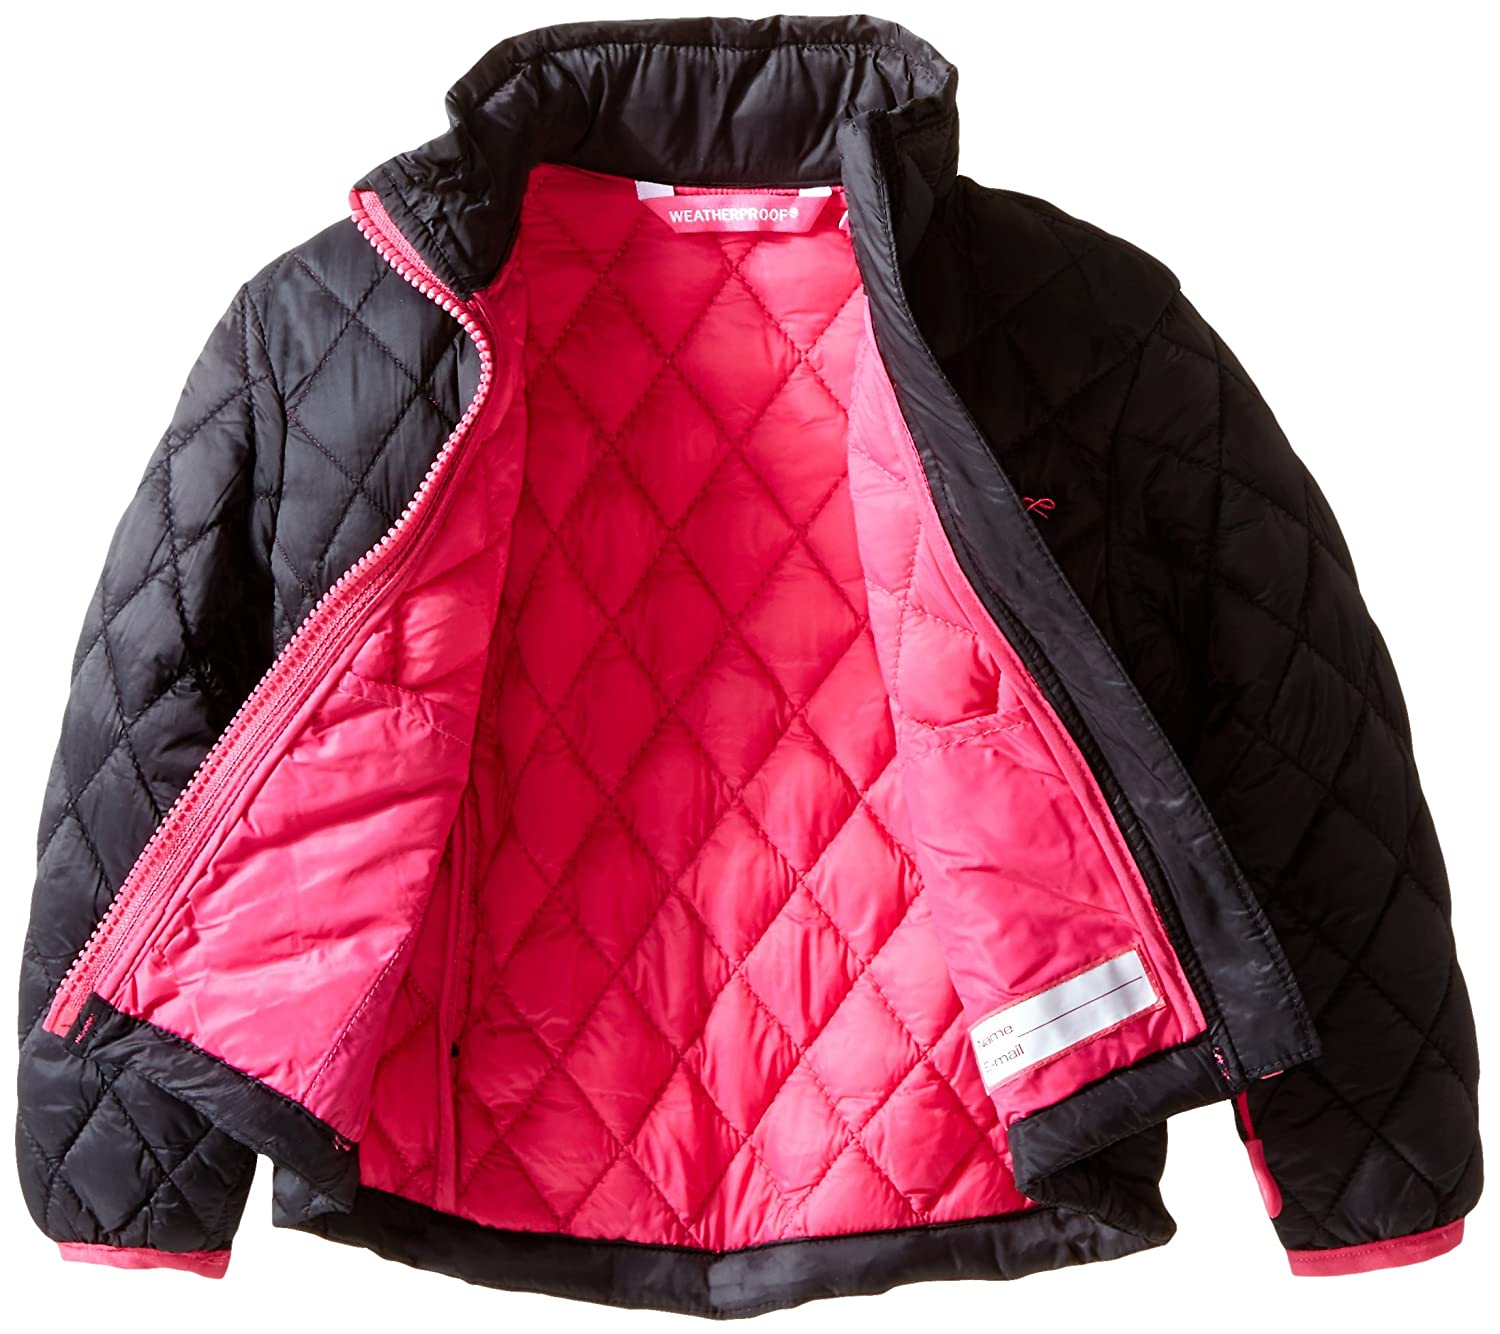 Weatherproof Girls Fashion Outerwear Jacket More Styles Available